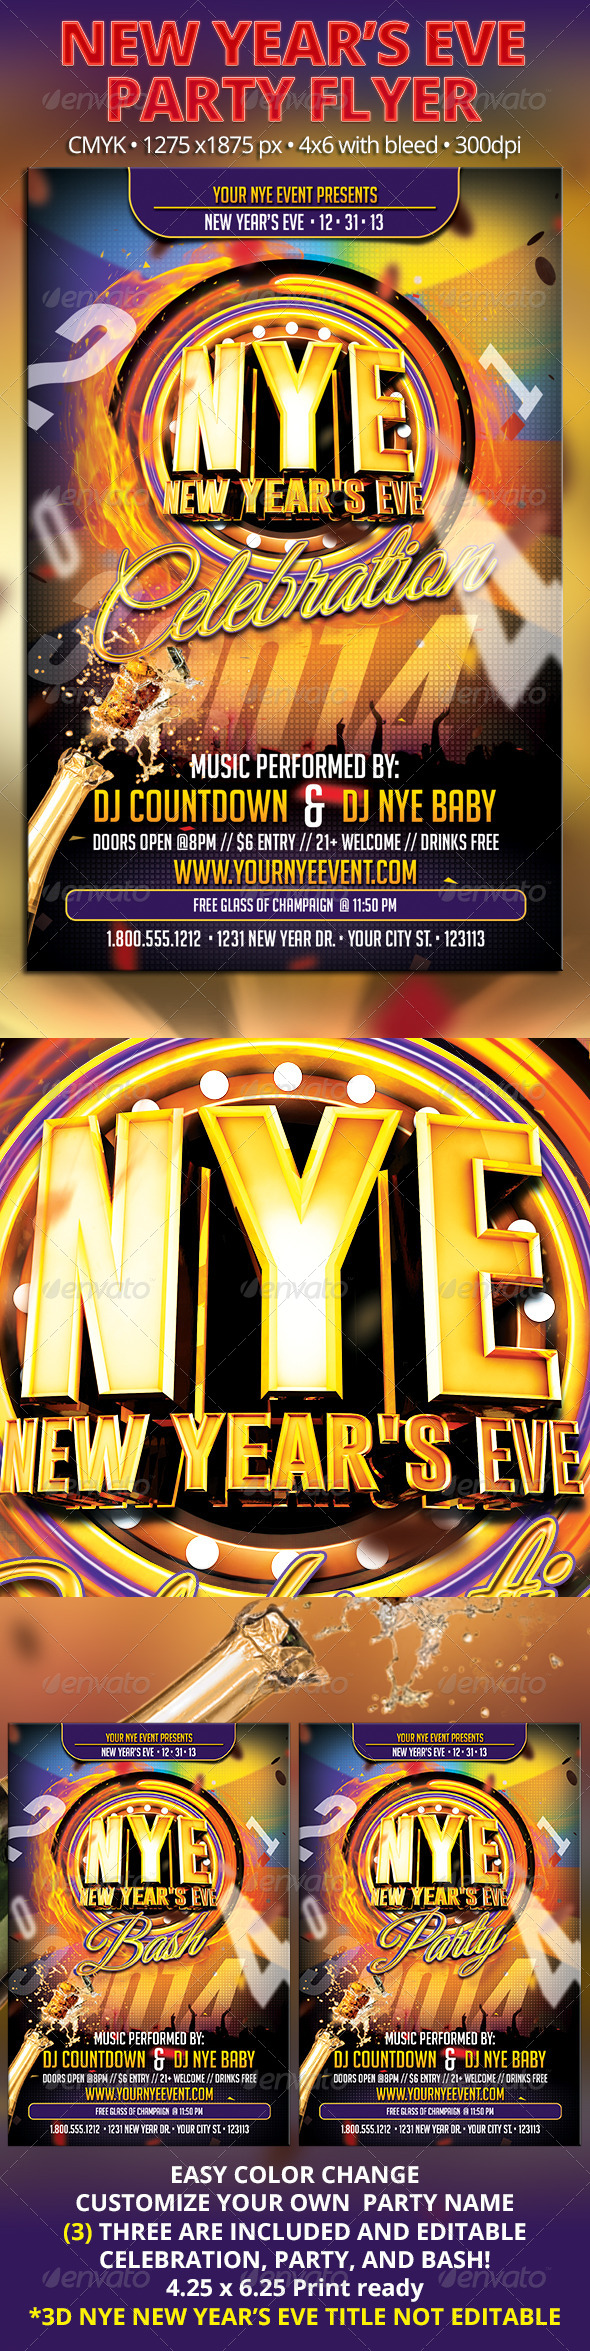 GraphicRiver NYE New Year s Eve Part Flyer 6219687